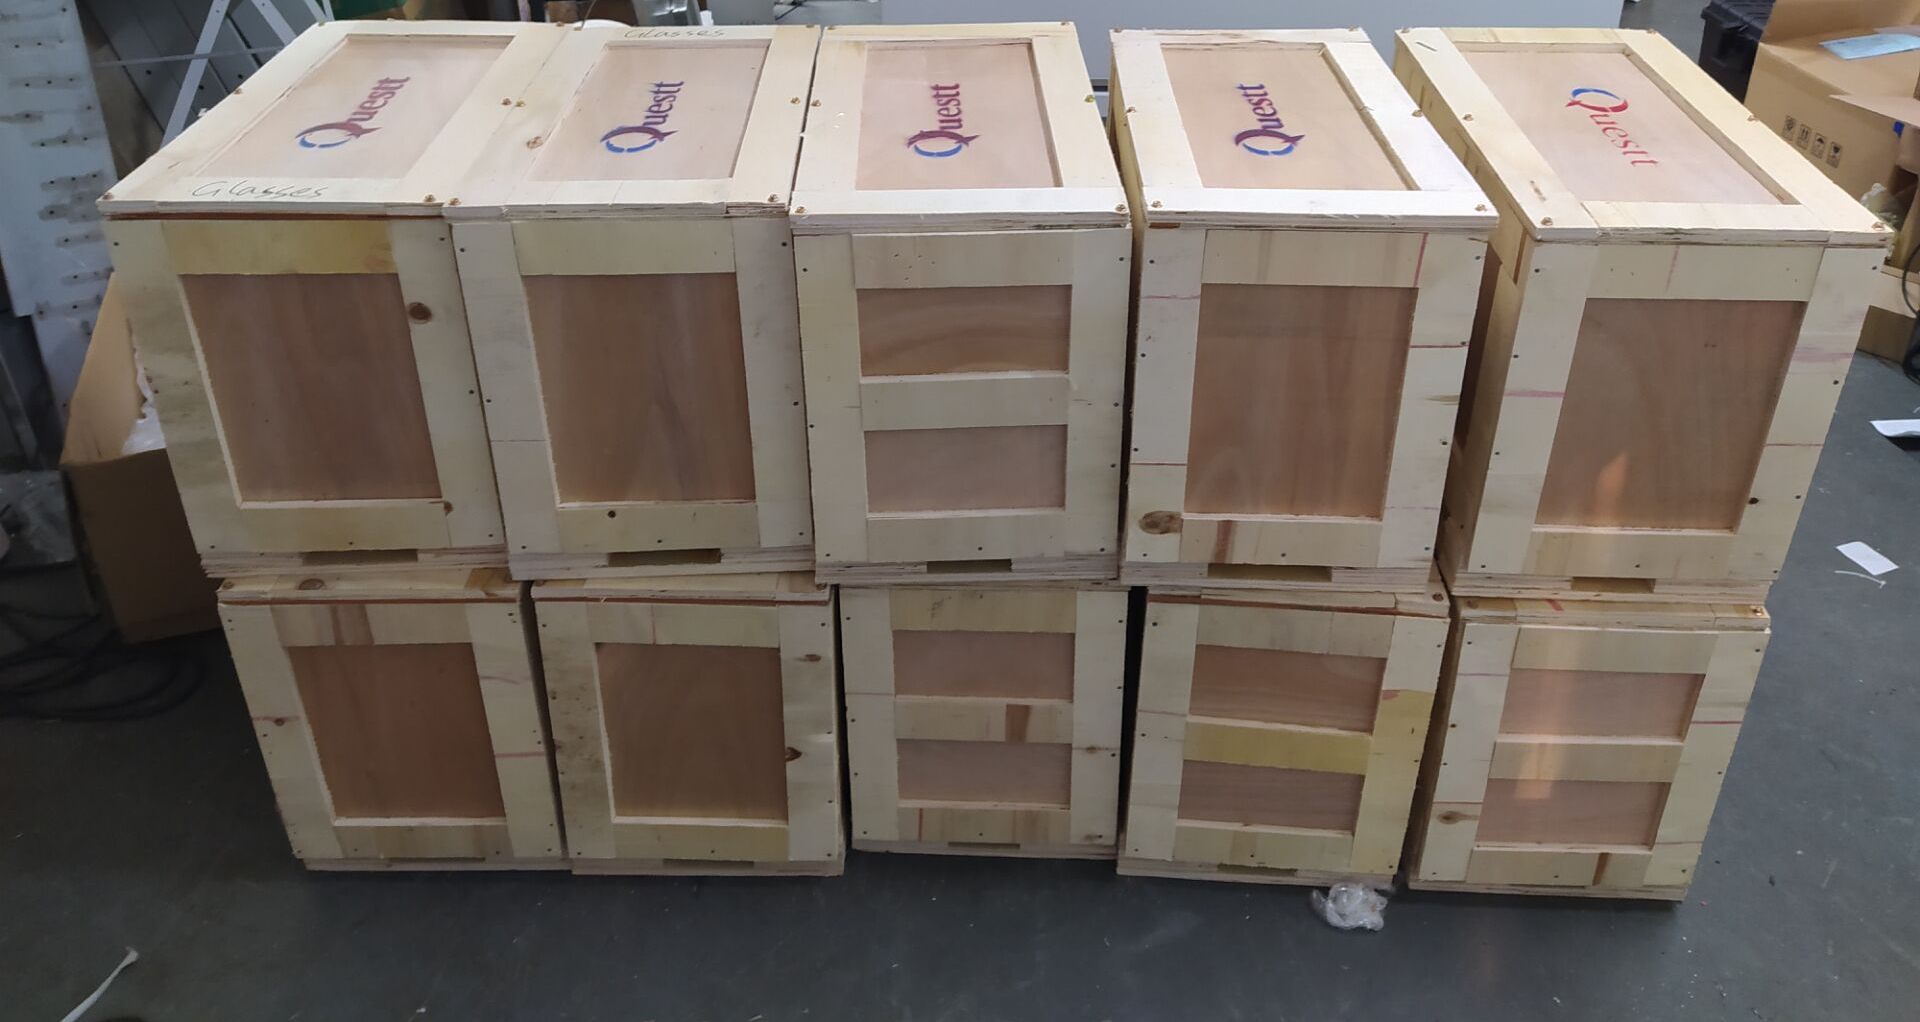 news-Ten sets laser cleaning machines have been shipped out-QUESTT-img